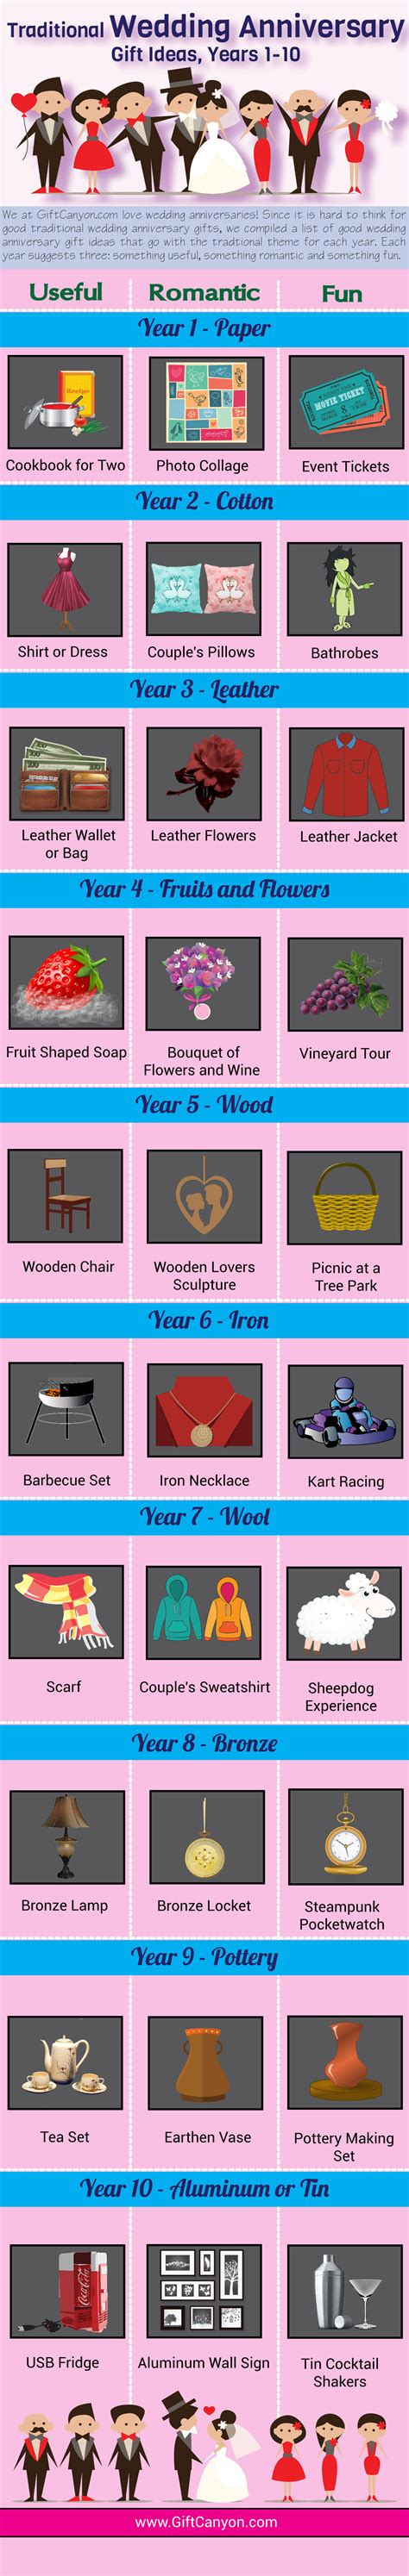 Wedding Gift Year 1 by Ideas For Traditional Wedding Anniversary Gifts Years 1